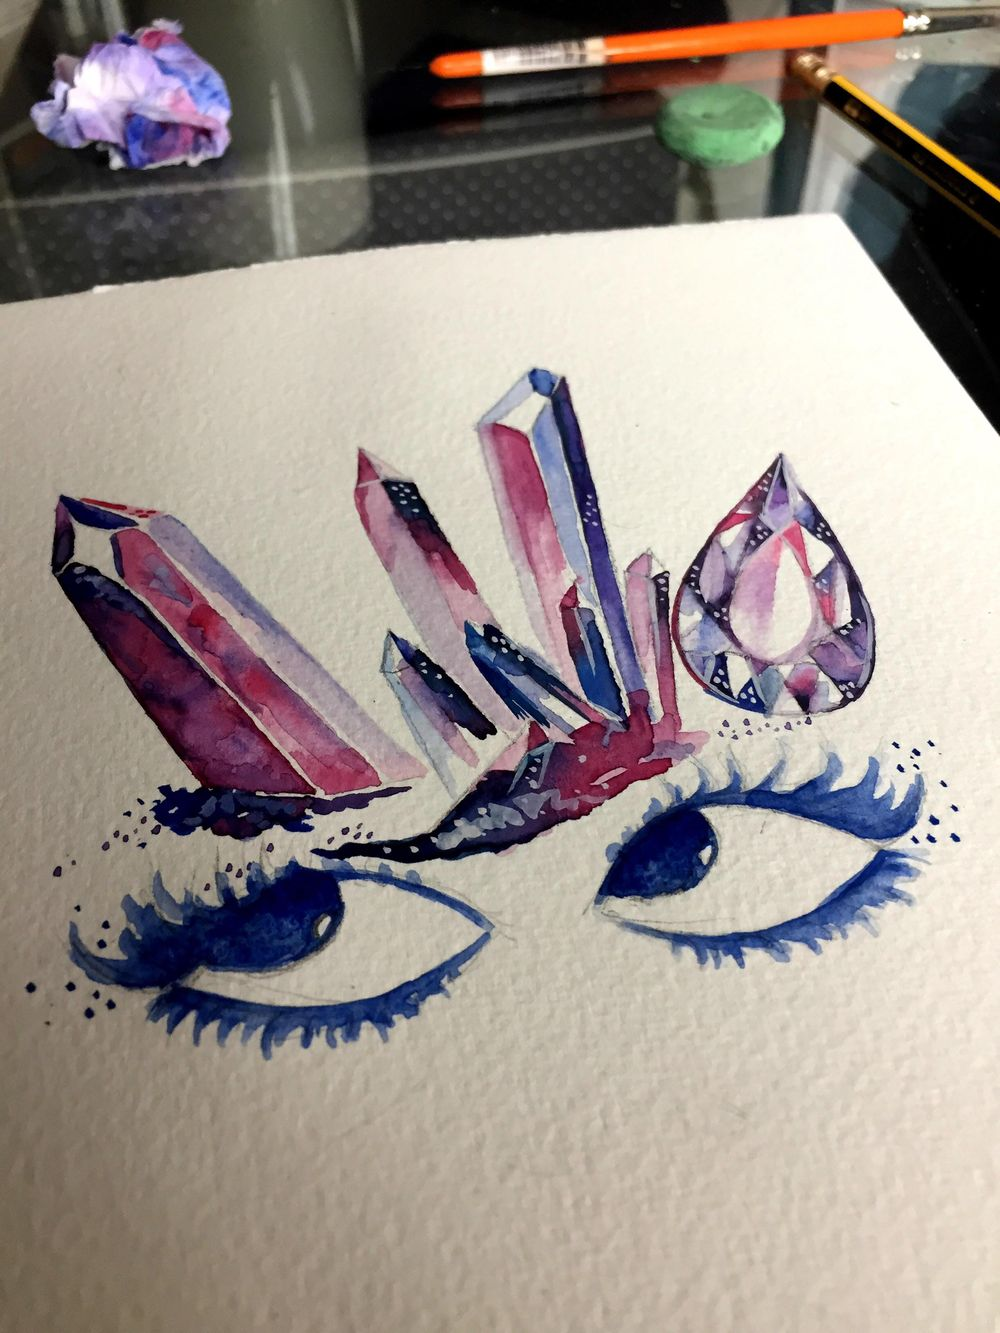 Crystals and Gems on my mind! . - image 2 - student project